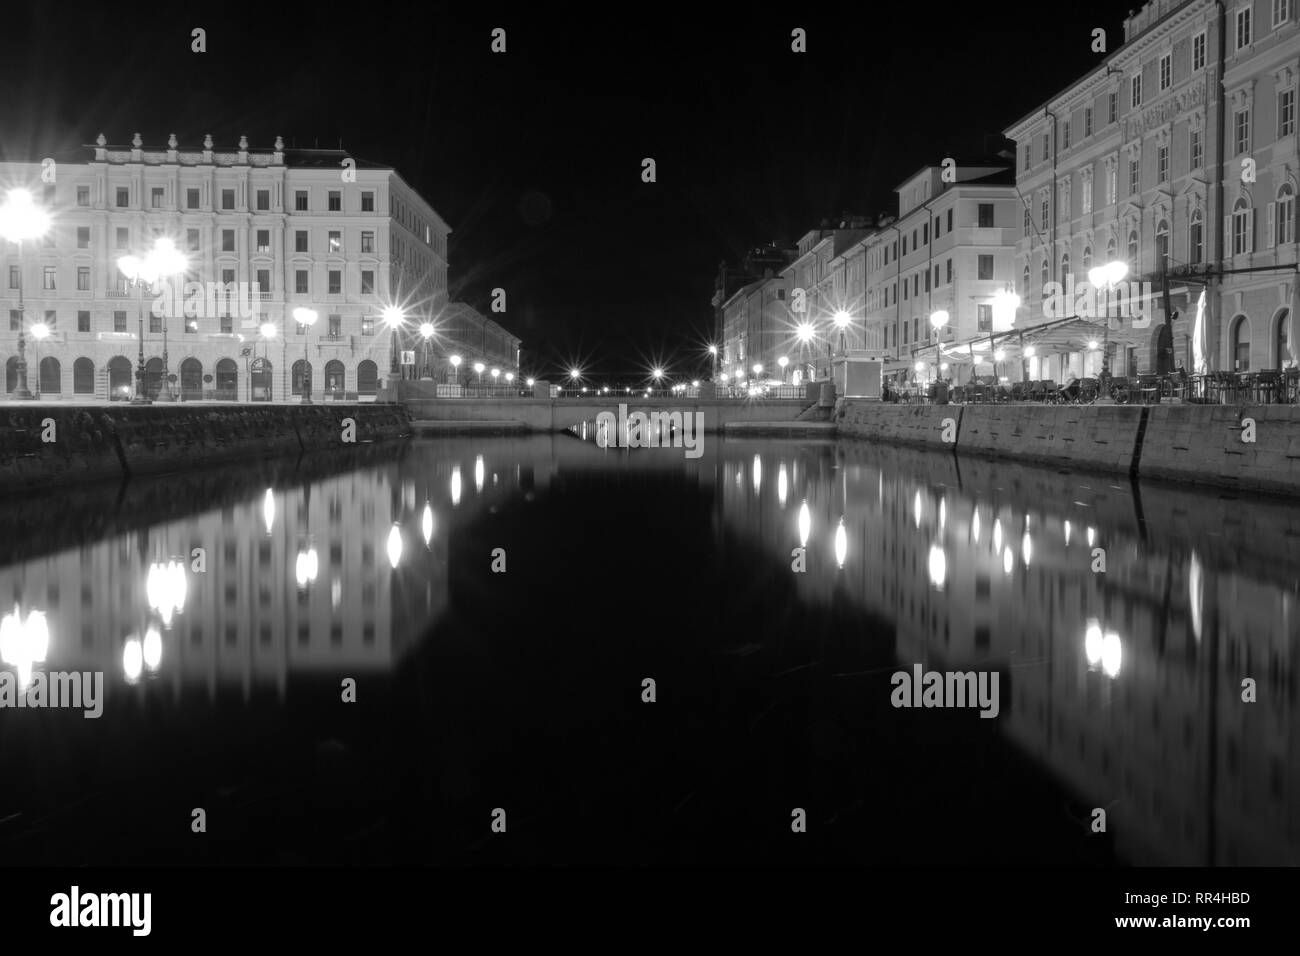 A view of Ponte Rosso Square. - Stock Image